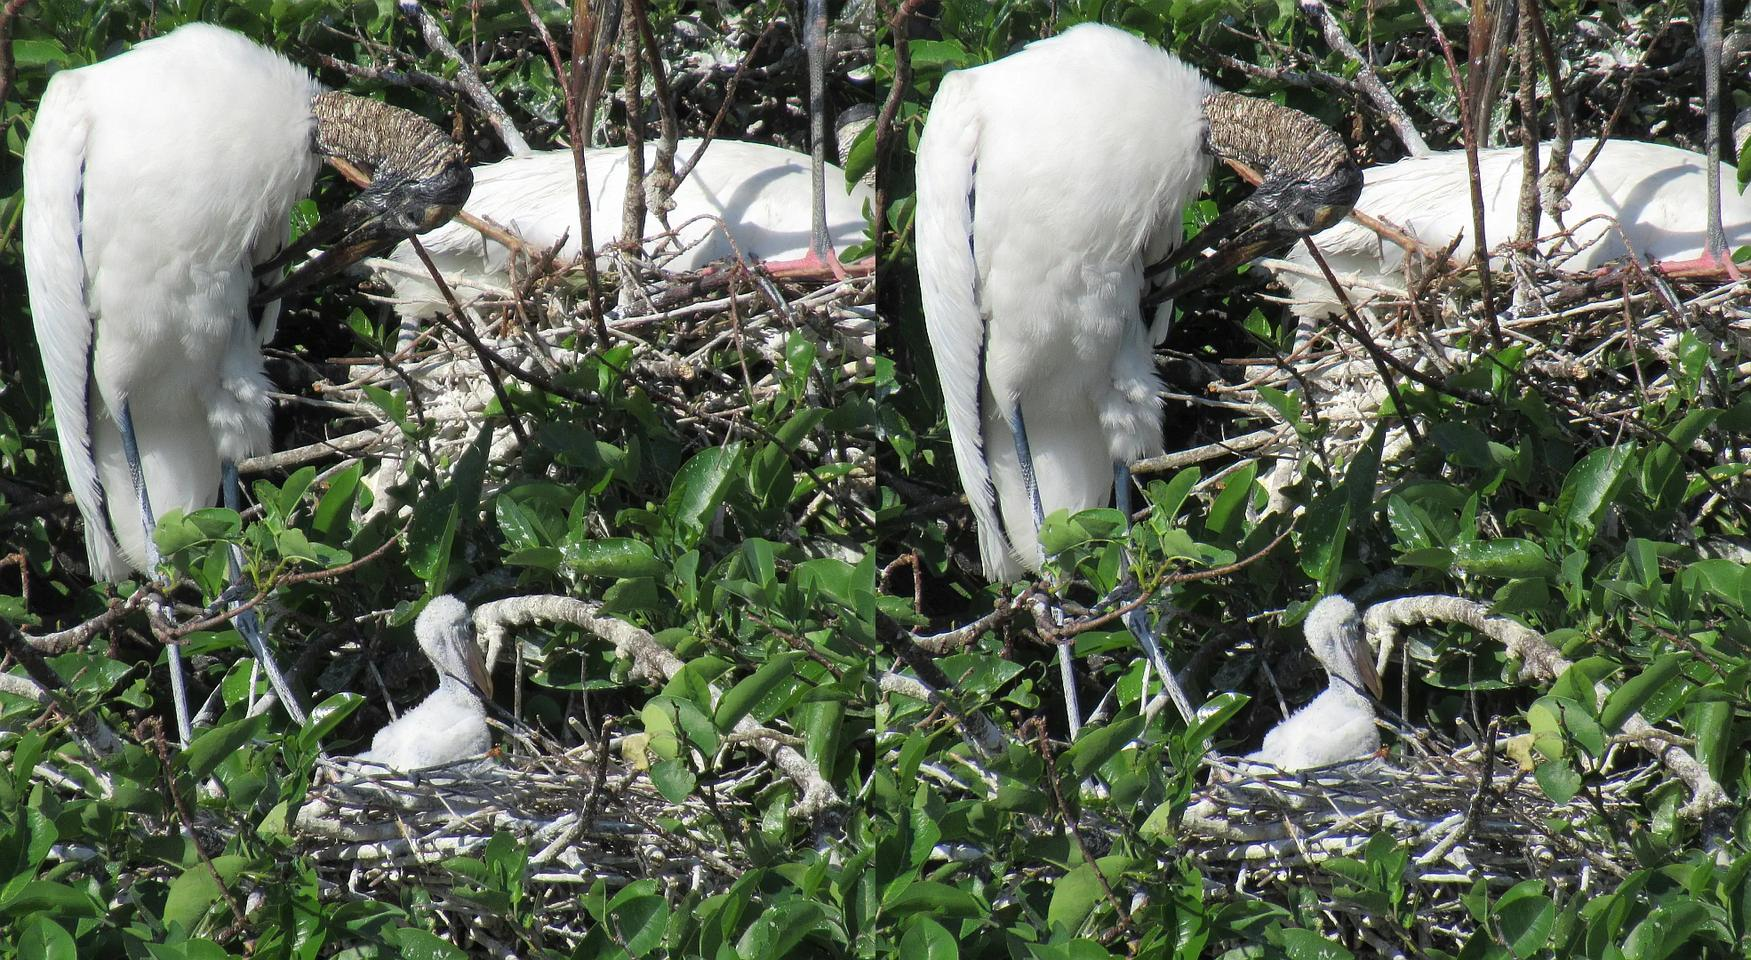 Wood Stork Eggs are Hatching - March 2021